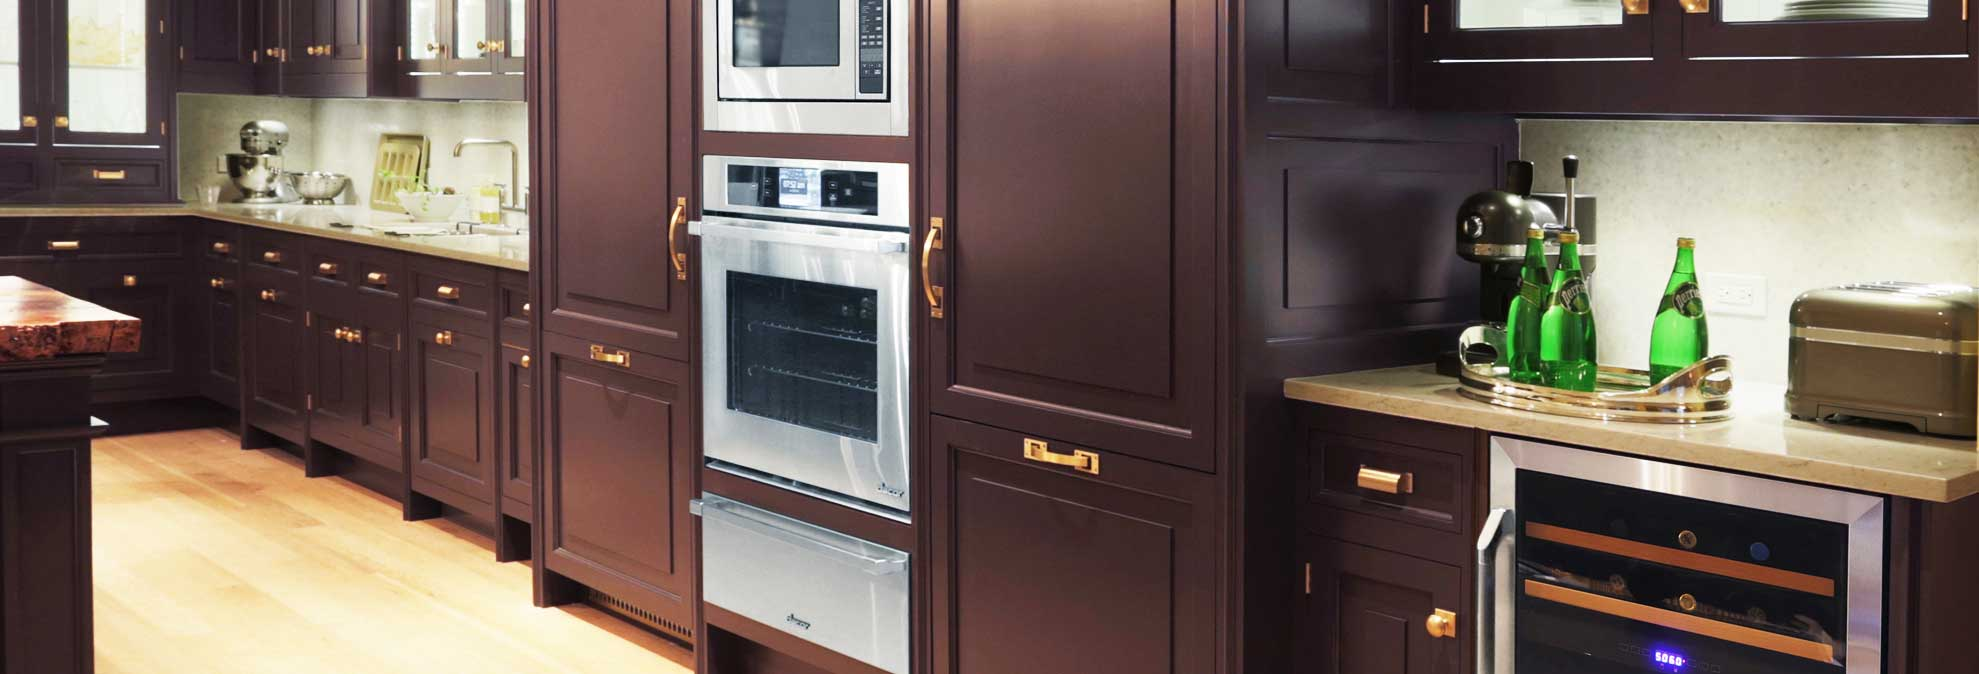 Kitchen Cupboard Tops best kitchen cabinet buying guide - consumer reports